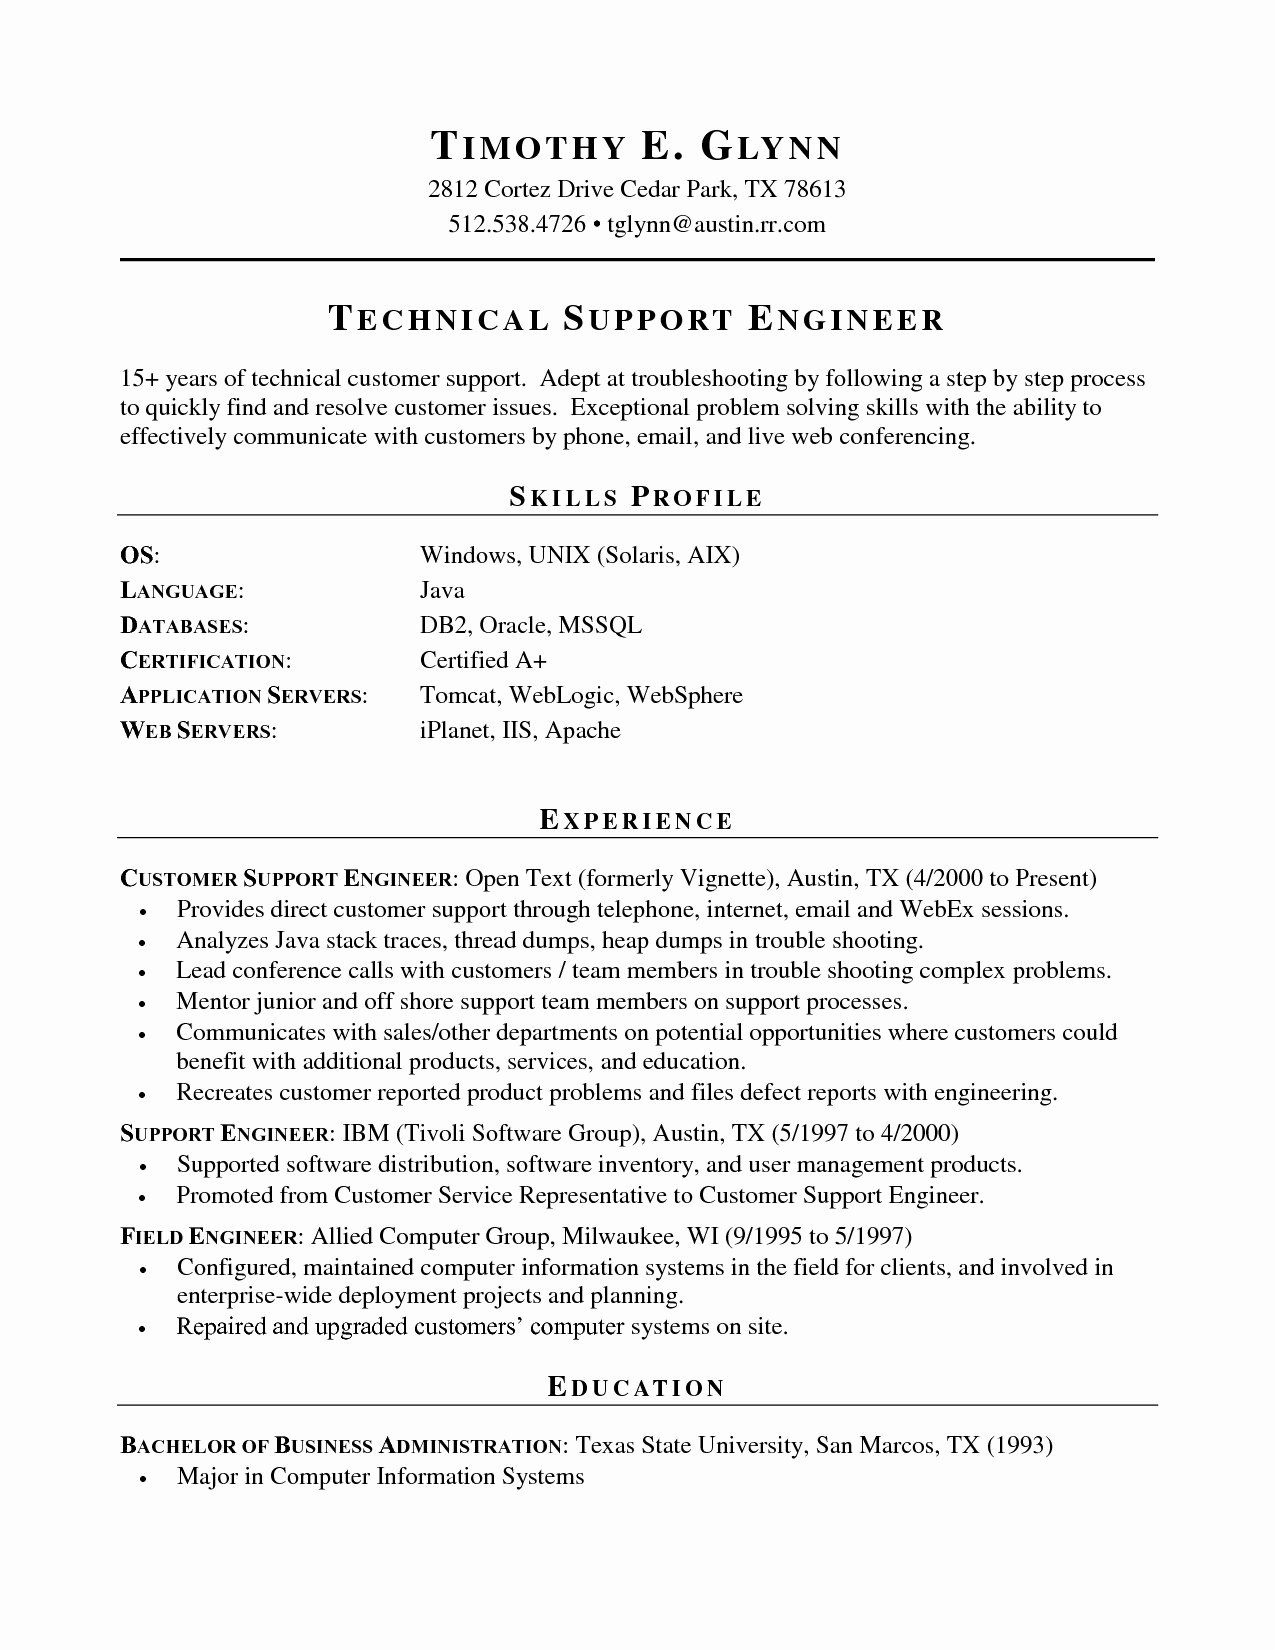 Technical Qualifications Resume Resume Ideas